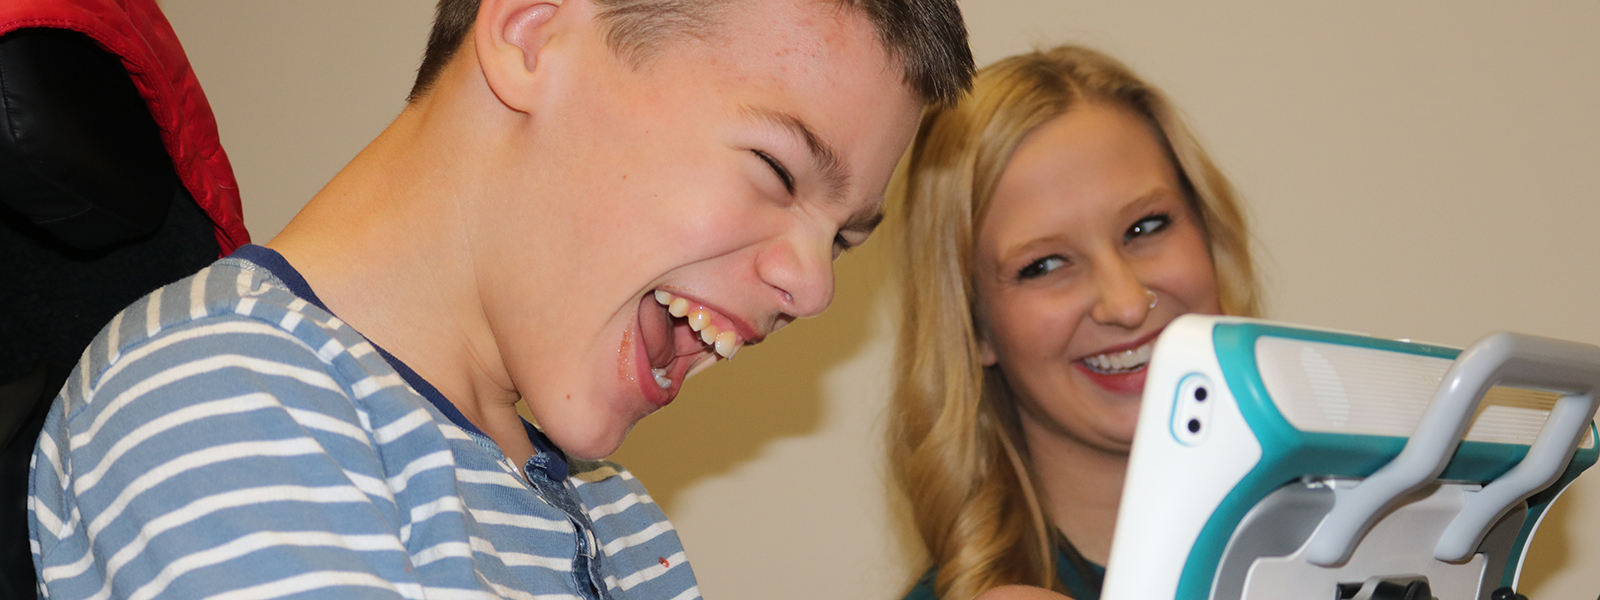 Kaden Bowen and speech-language pathology graduate student Audrey Hartwell share a laugh during Kaden's session at the Barkley Speech Language and Hearing Clinic.